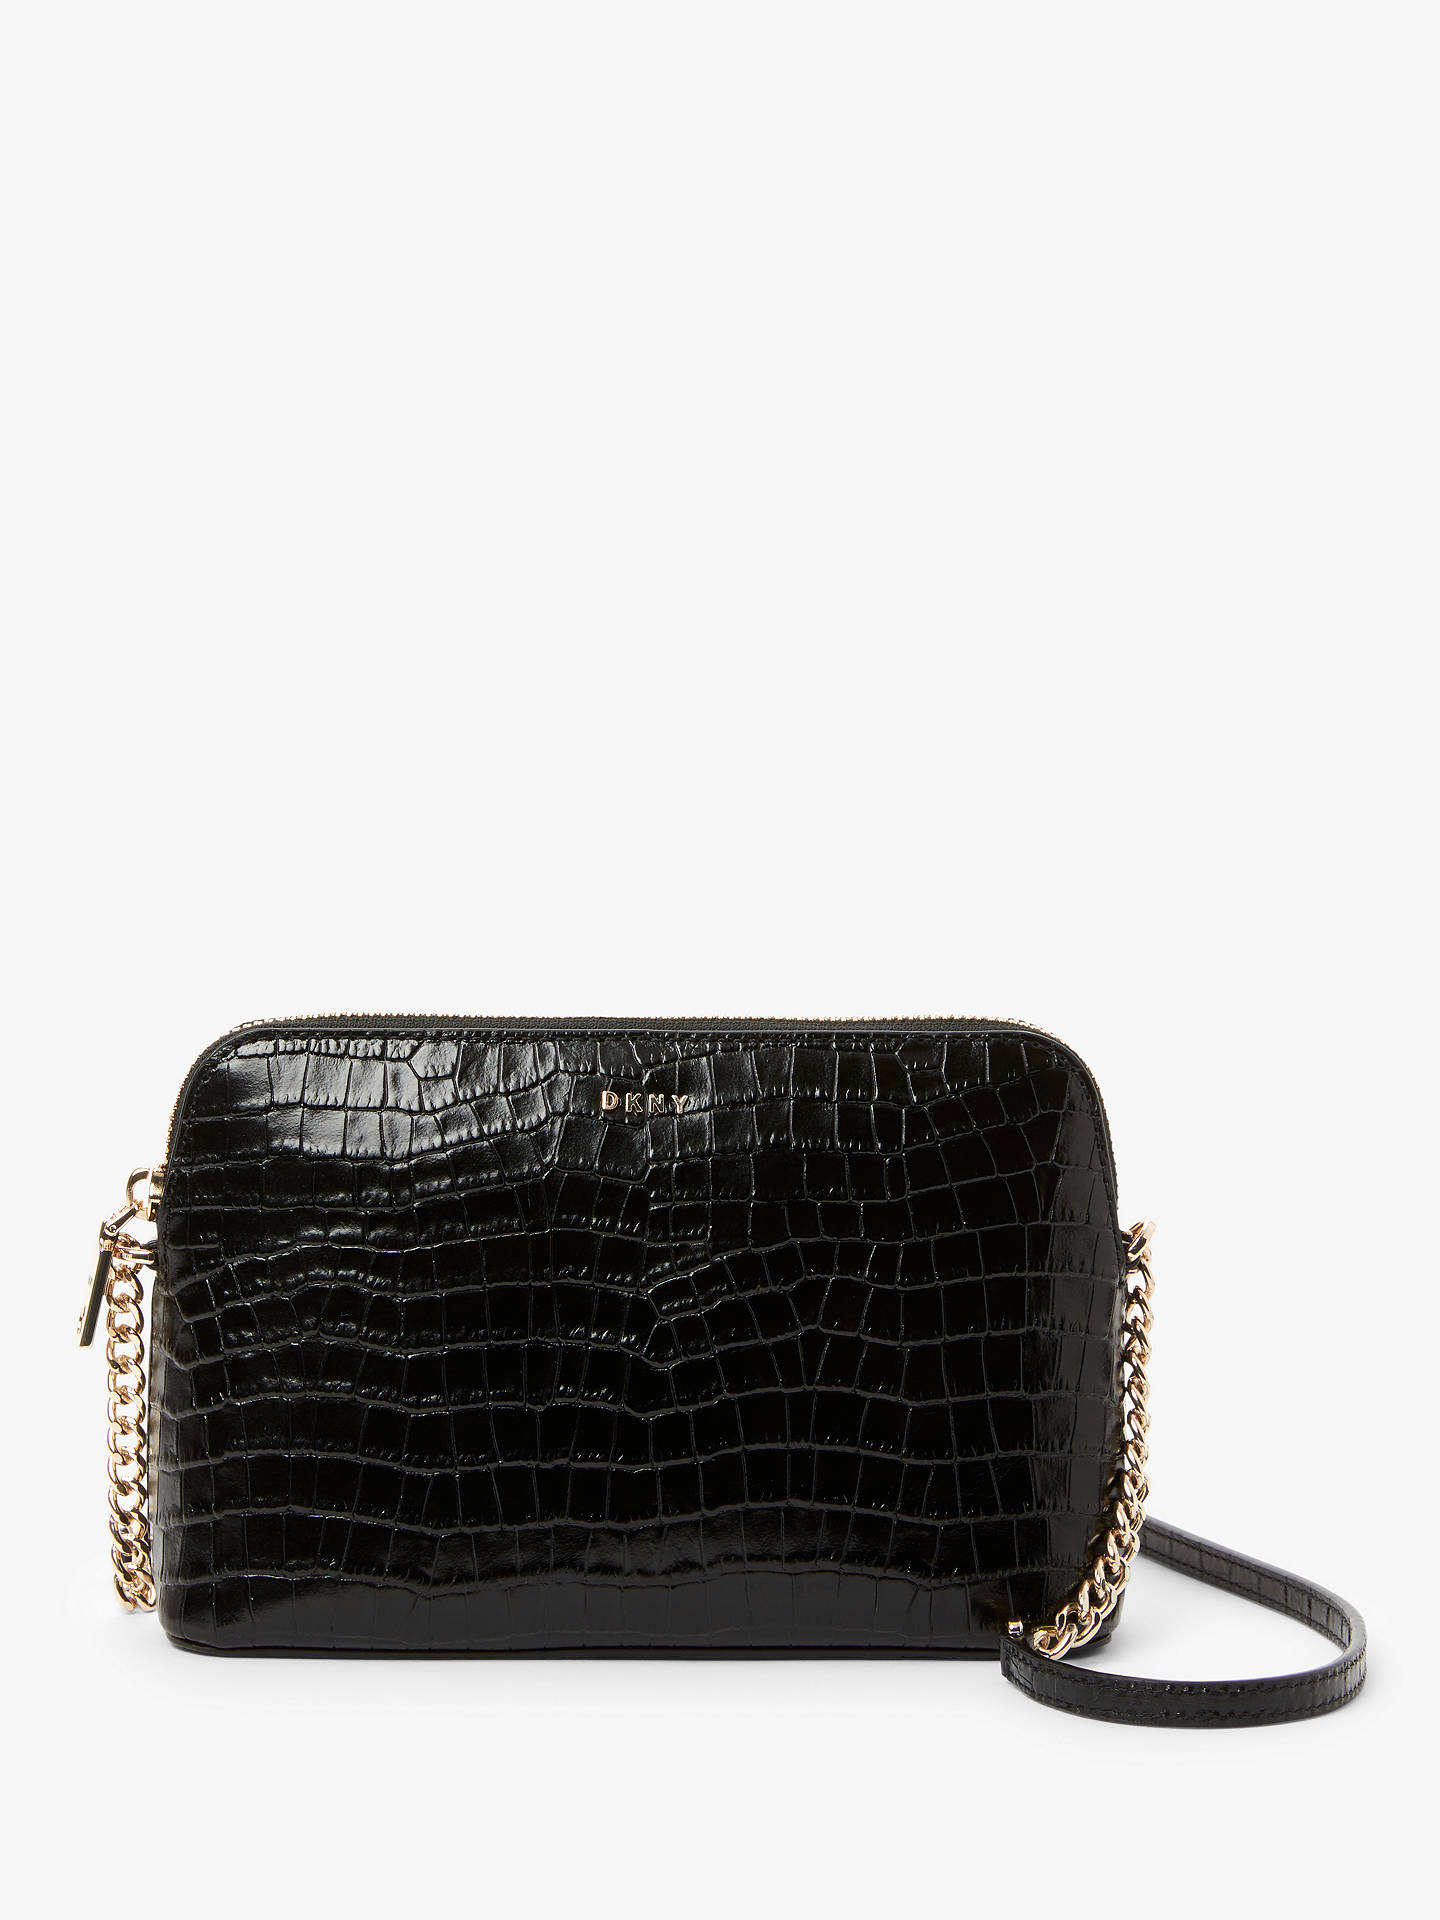 Dkny Bryant Dome Leather Cross Body Bag, Croc Black by Dkny